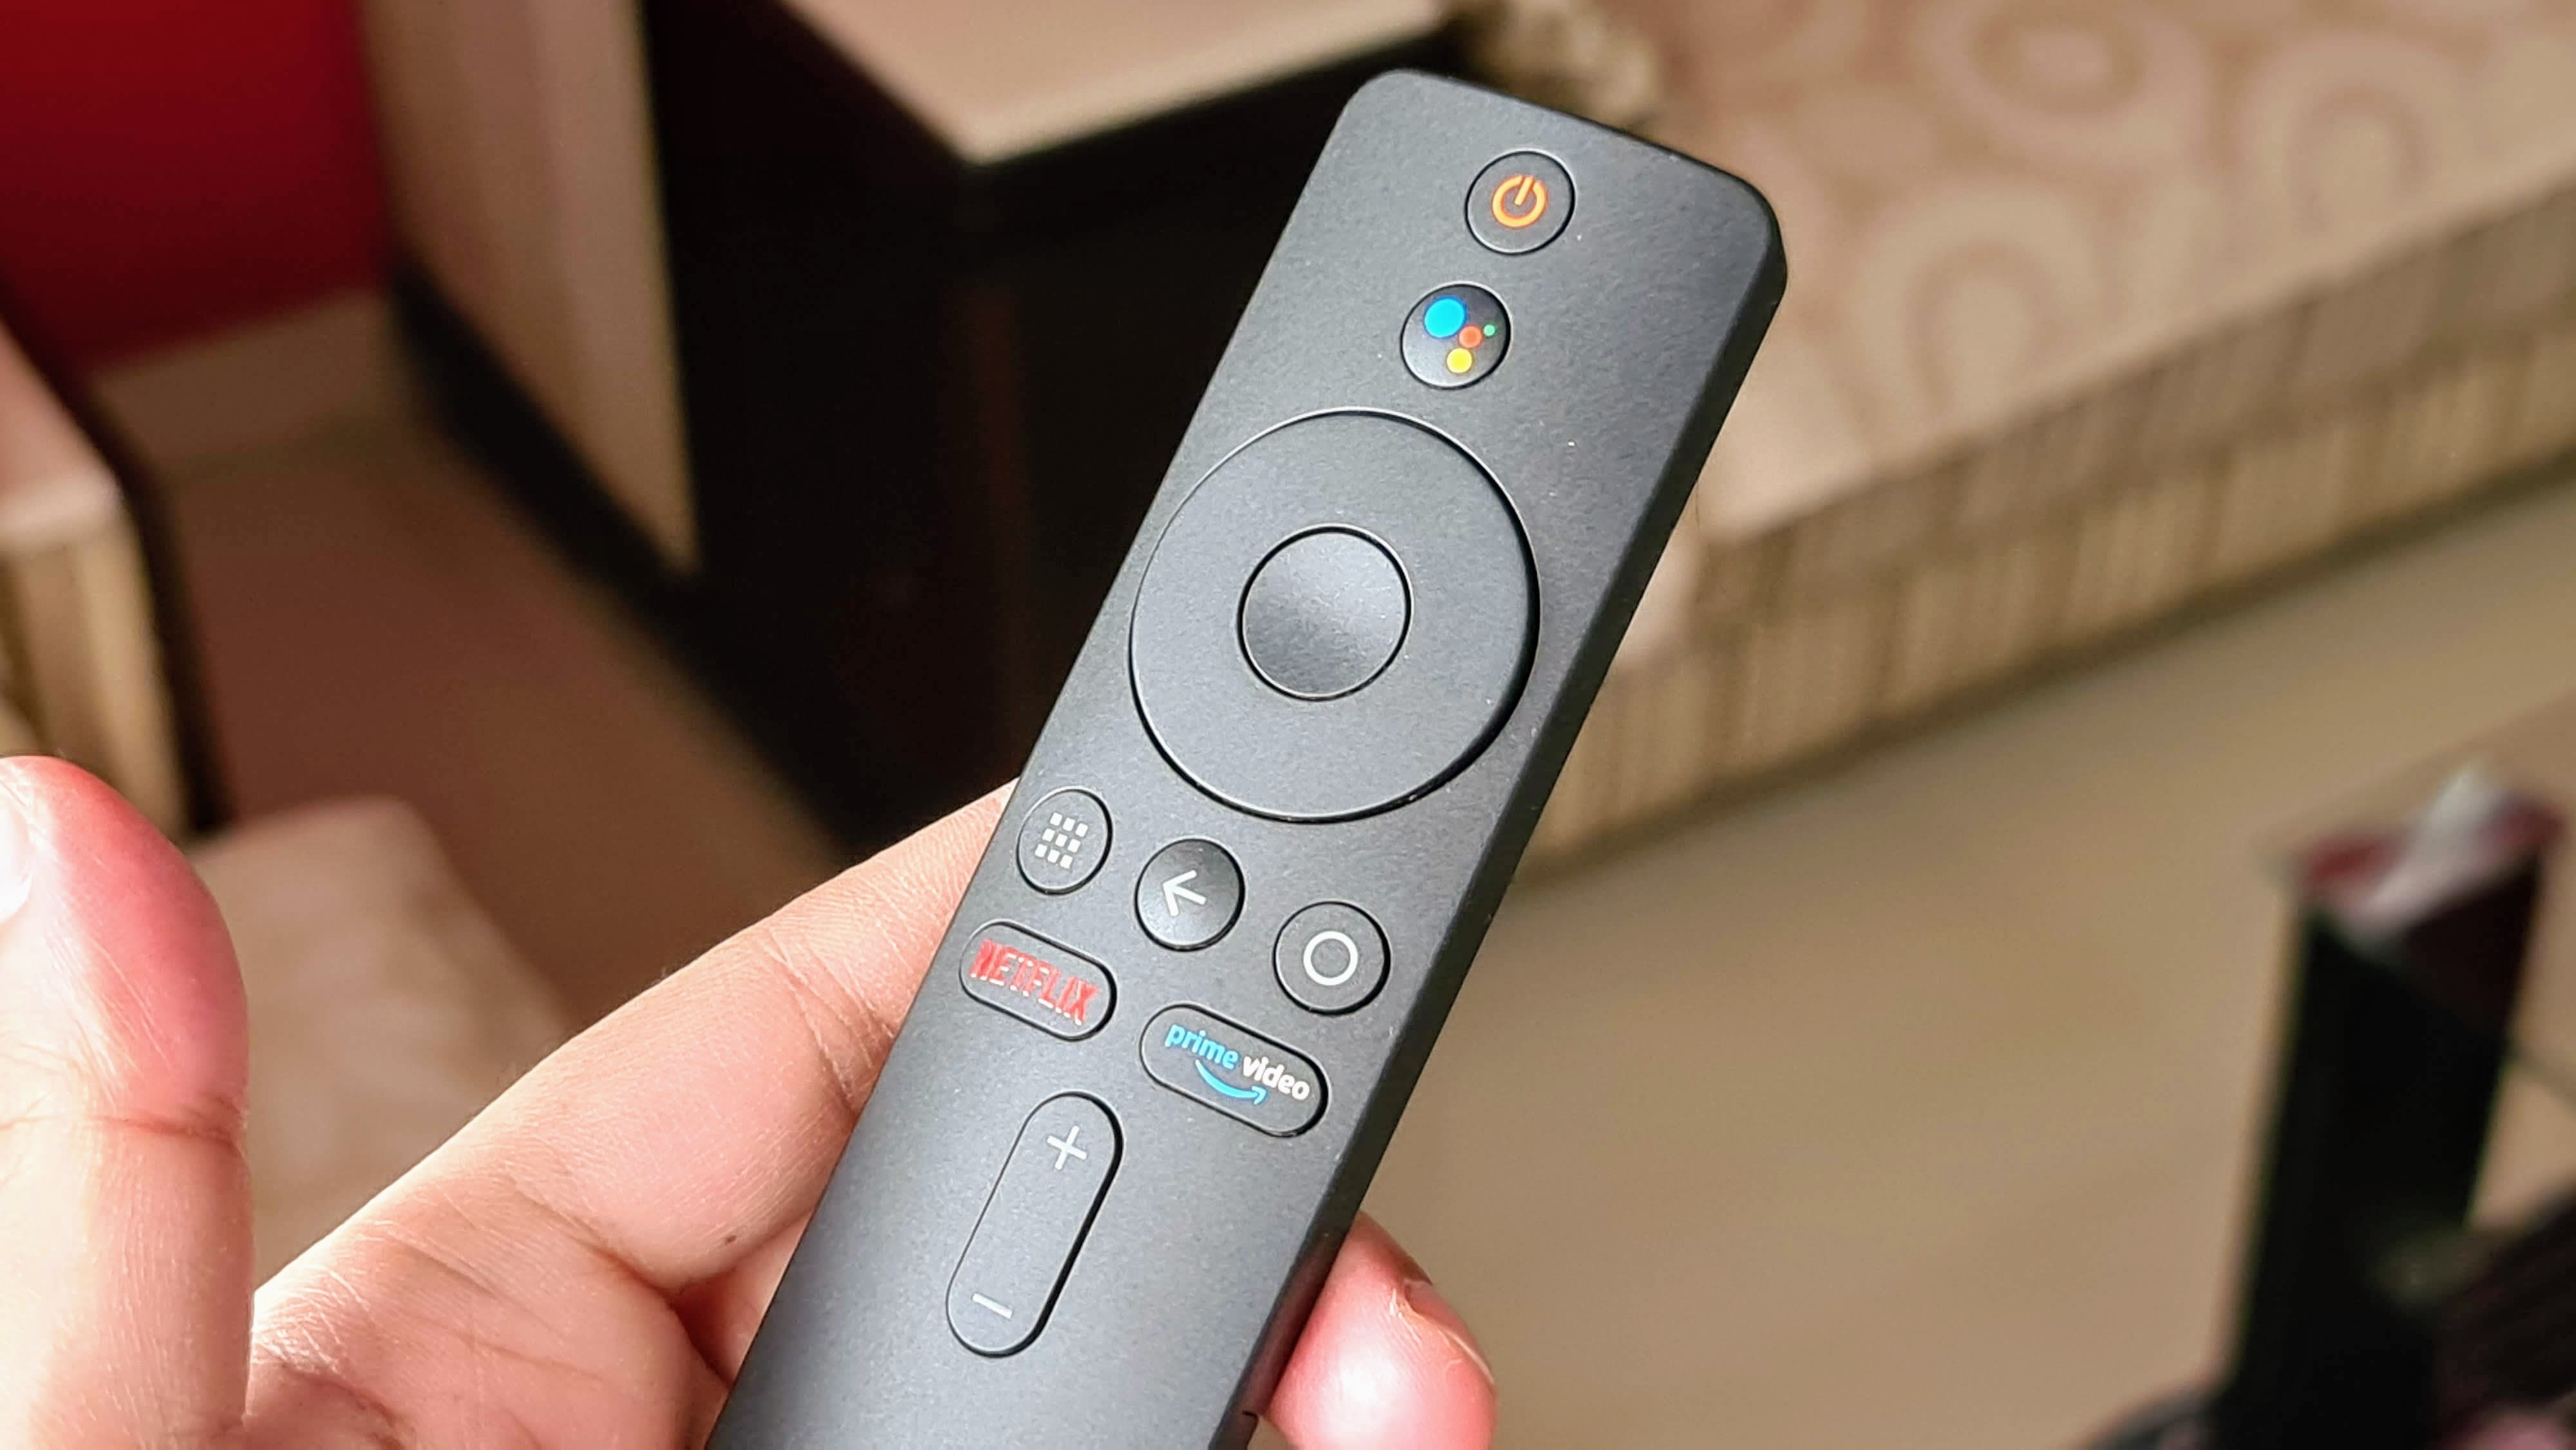 The Mi Infrared Remote control has hot keys for Netflix, Amazon Prime and Google Assistant.